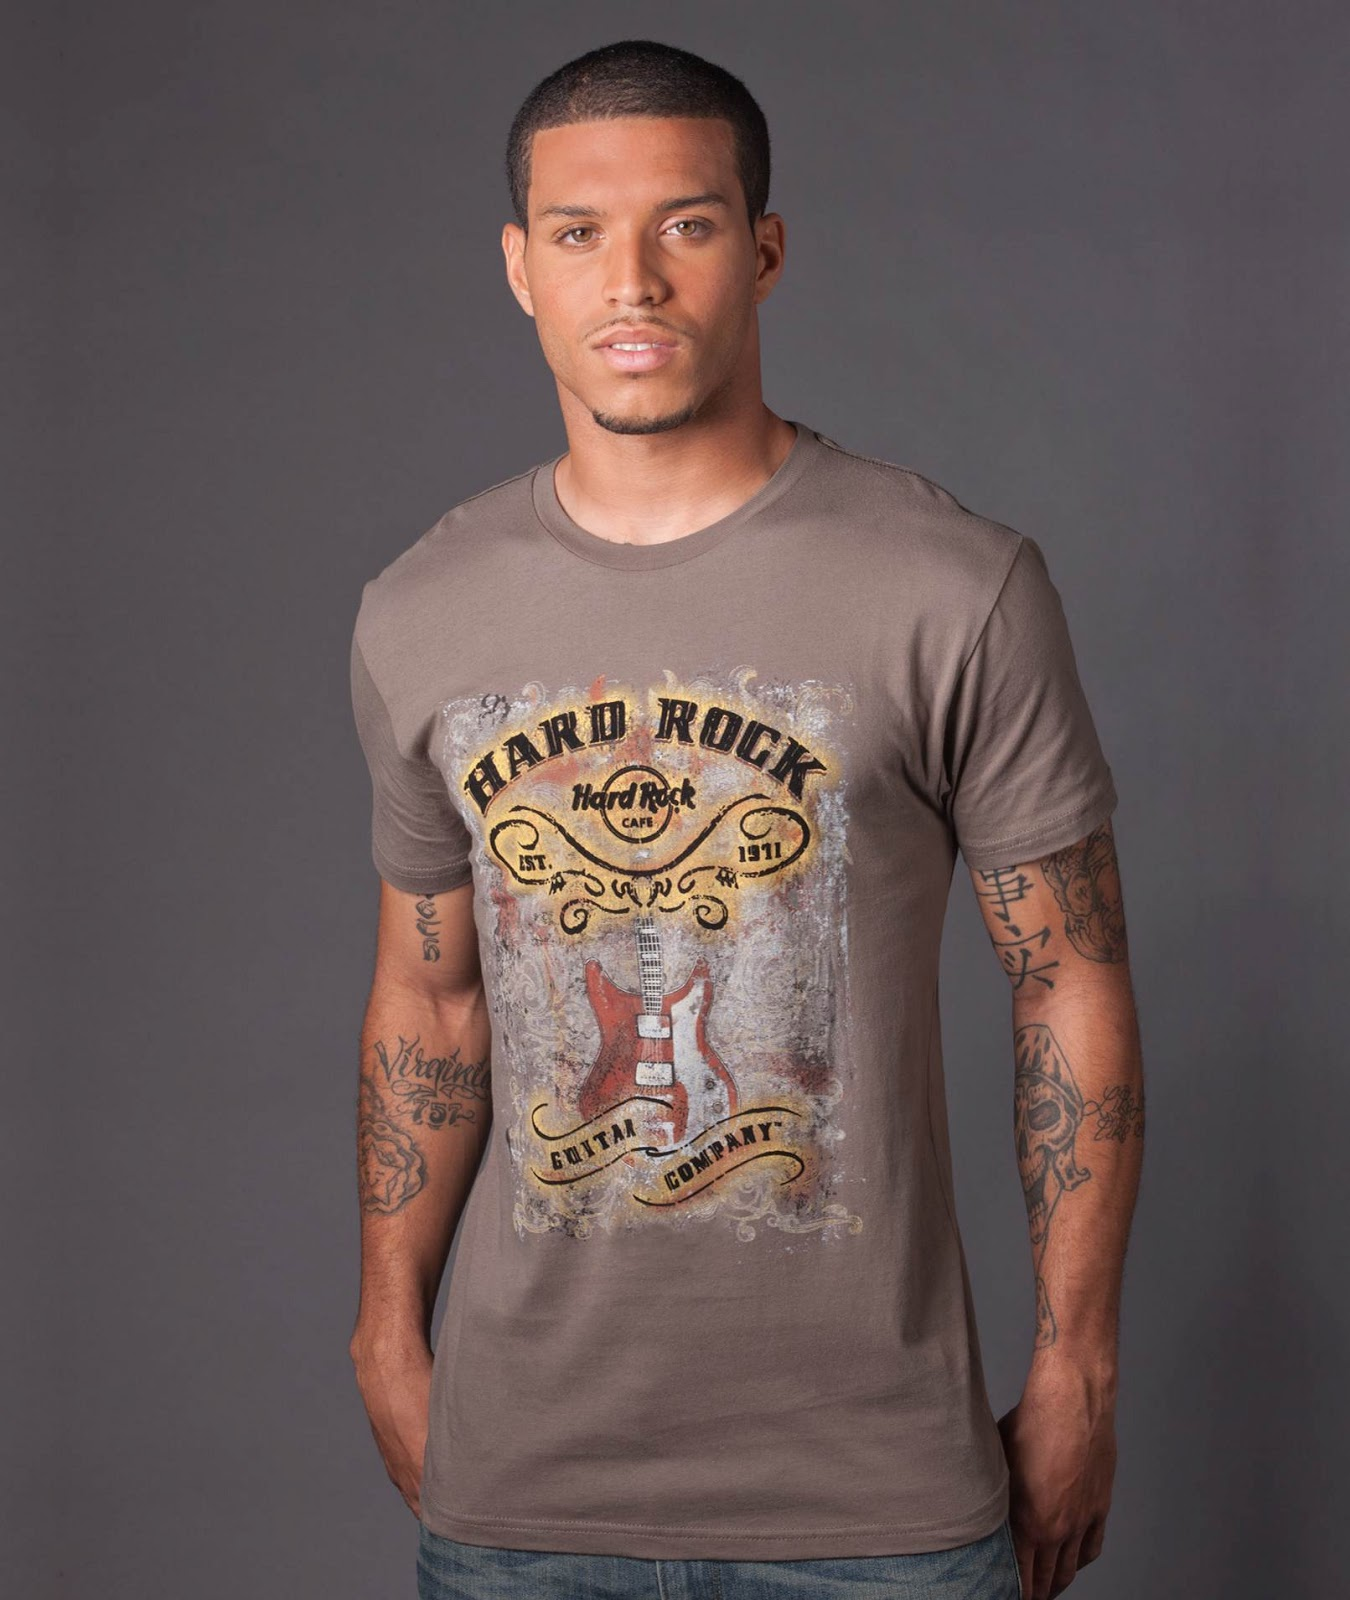 busybeeroom welcomes you hard rock cafe dublin t shirts. Black Bedroom Furniture Sets. Home Design Ideas